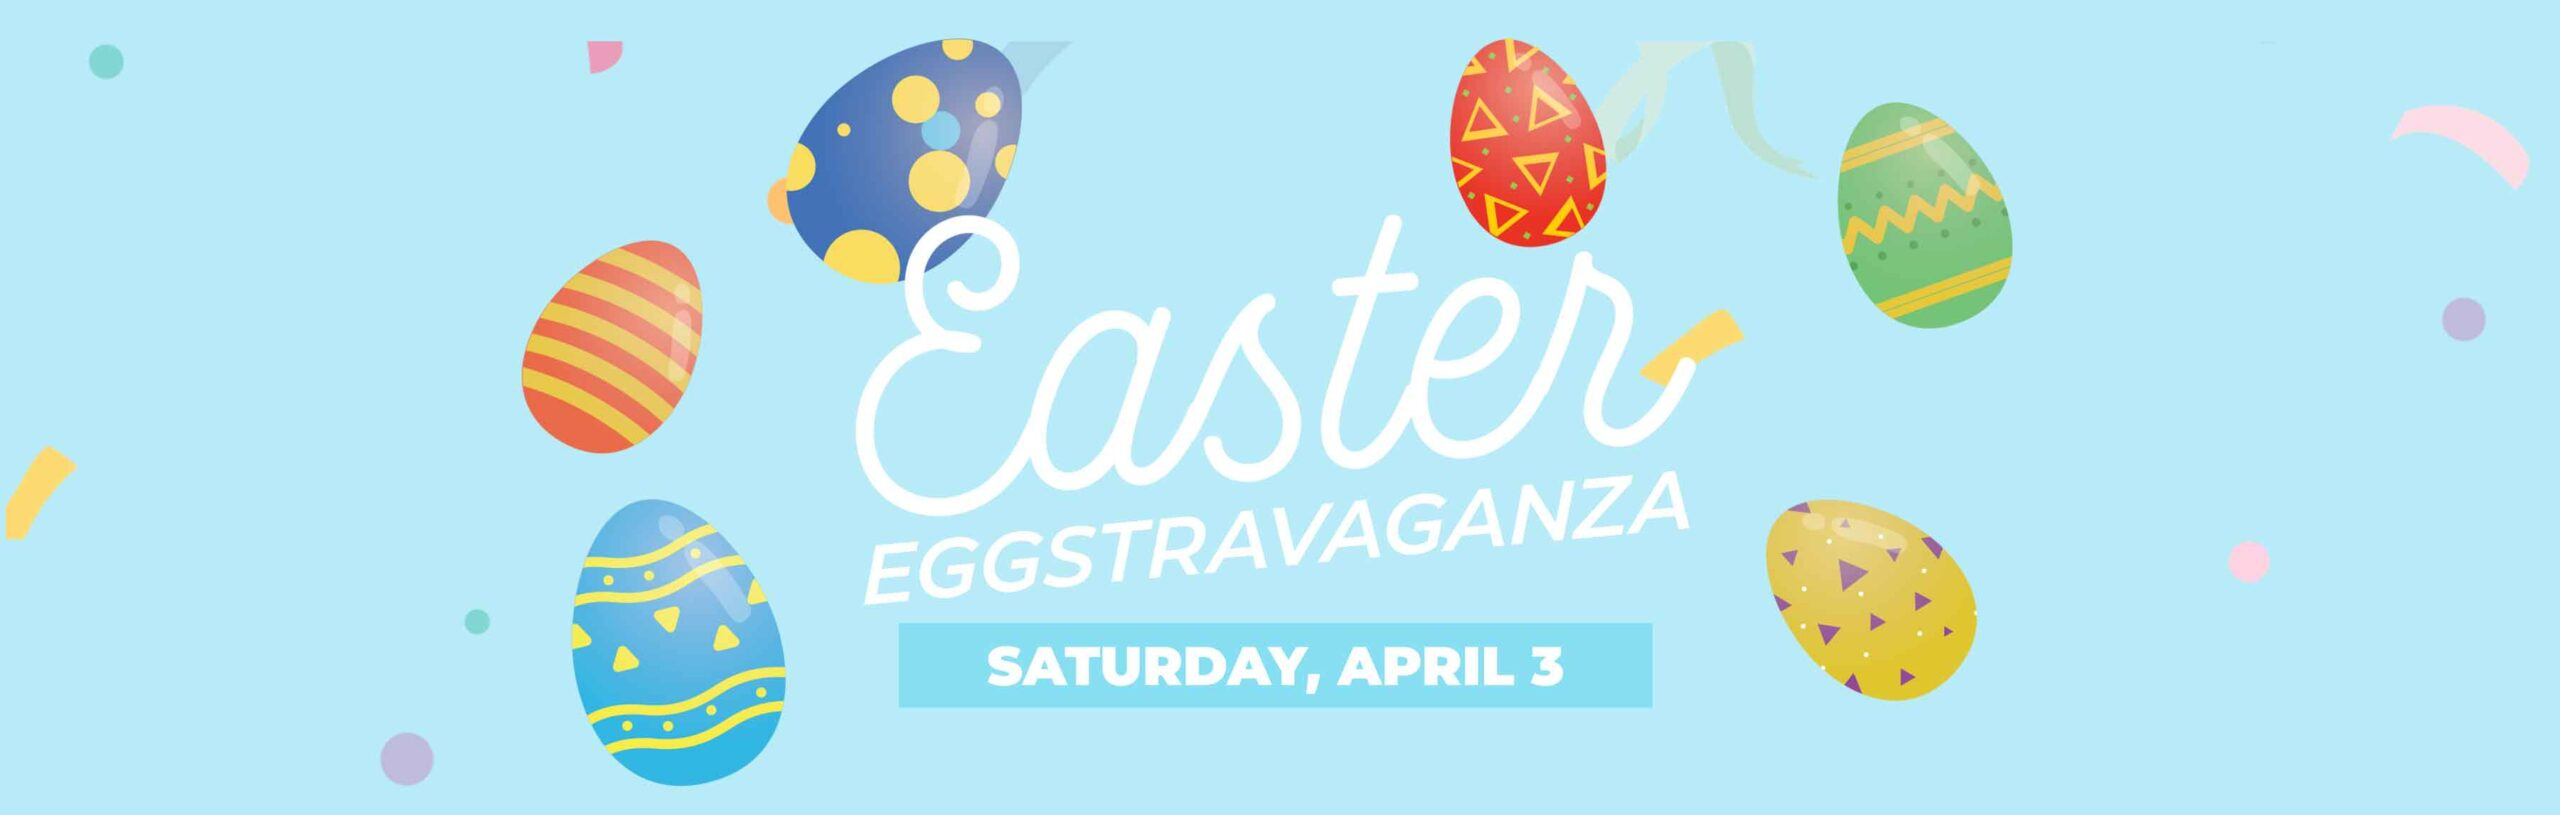 Easter Eggstravaganza Egg Graphic 3600x1100